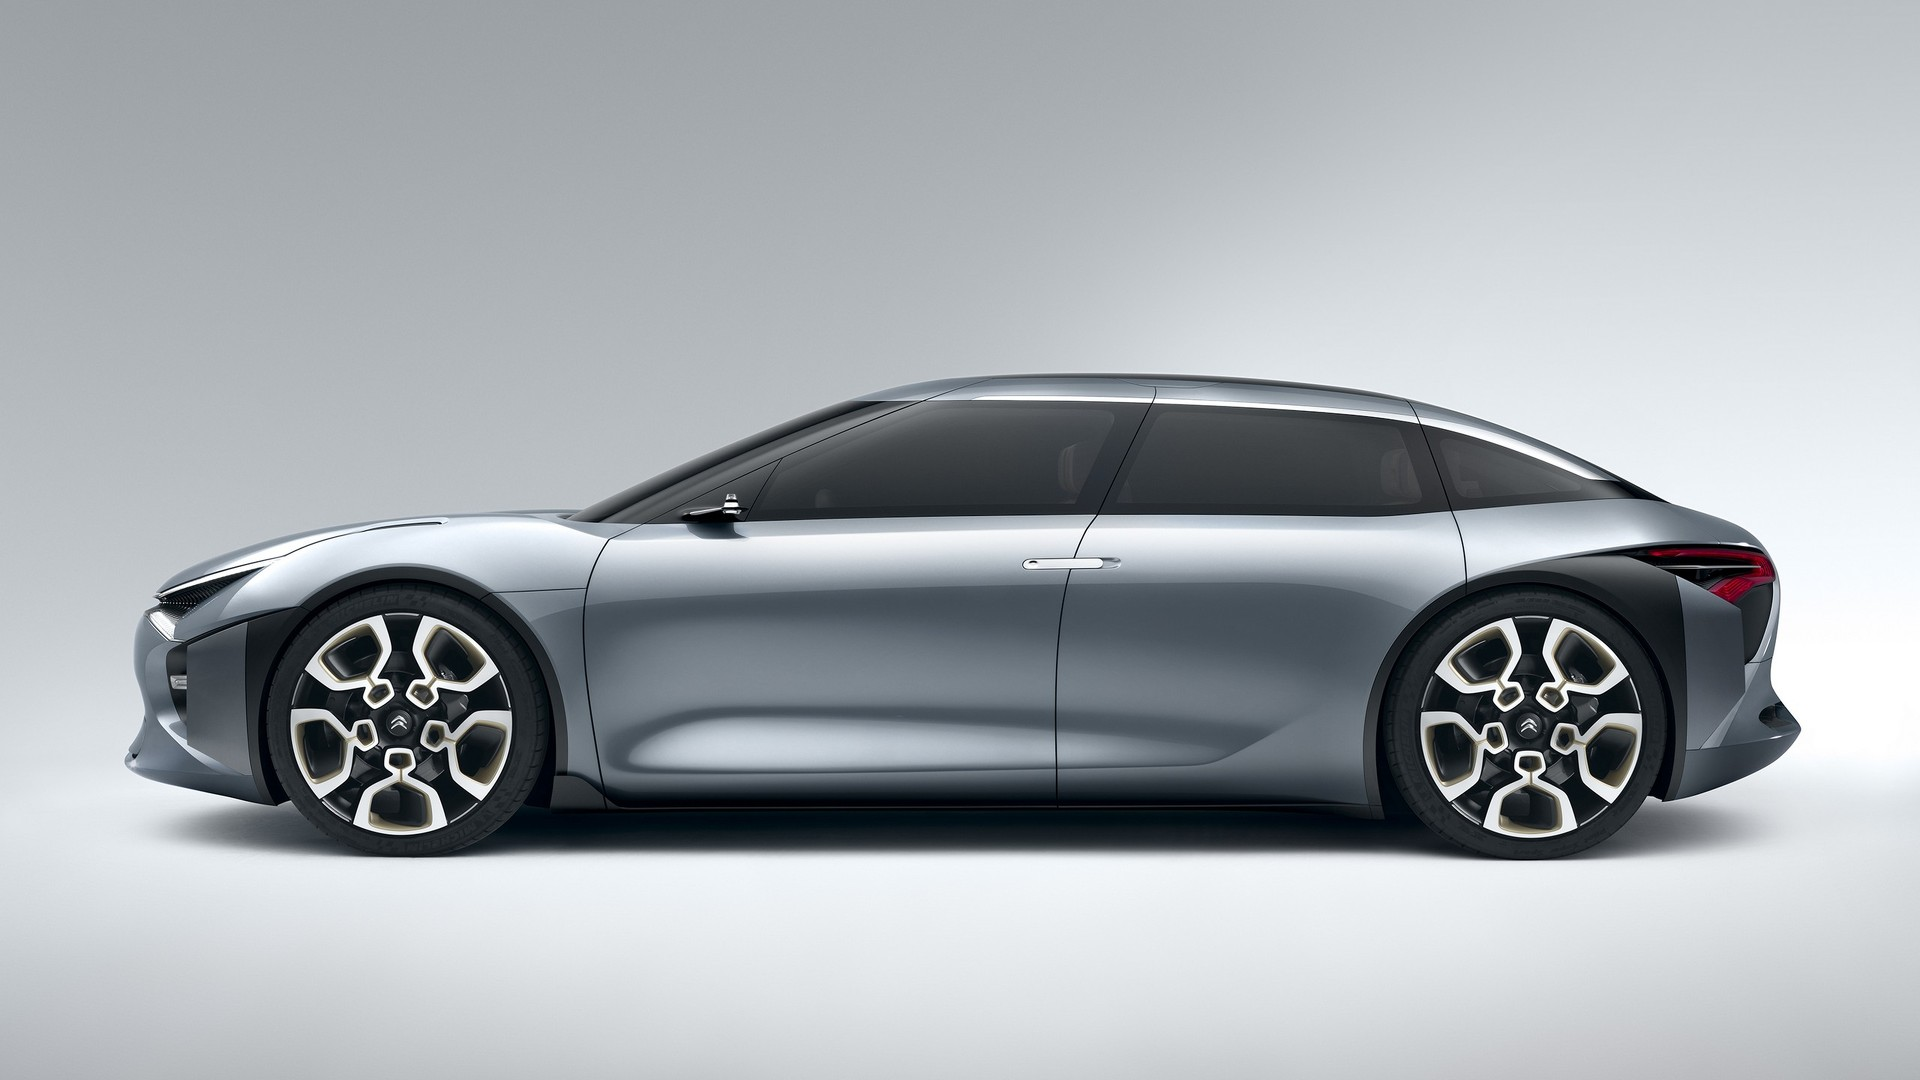 citroen cxperience concept shows bold look for potential c5 replacement. Black Bedroom Furniture Sets. Home Design Ideas